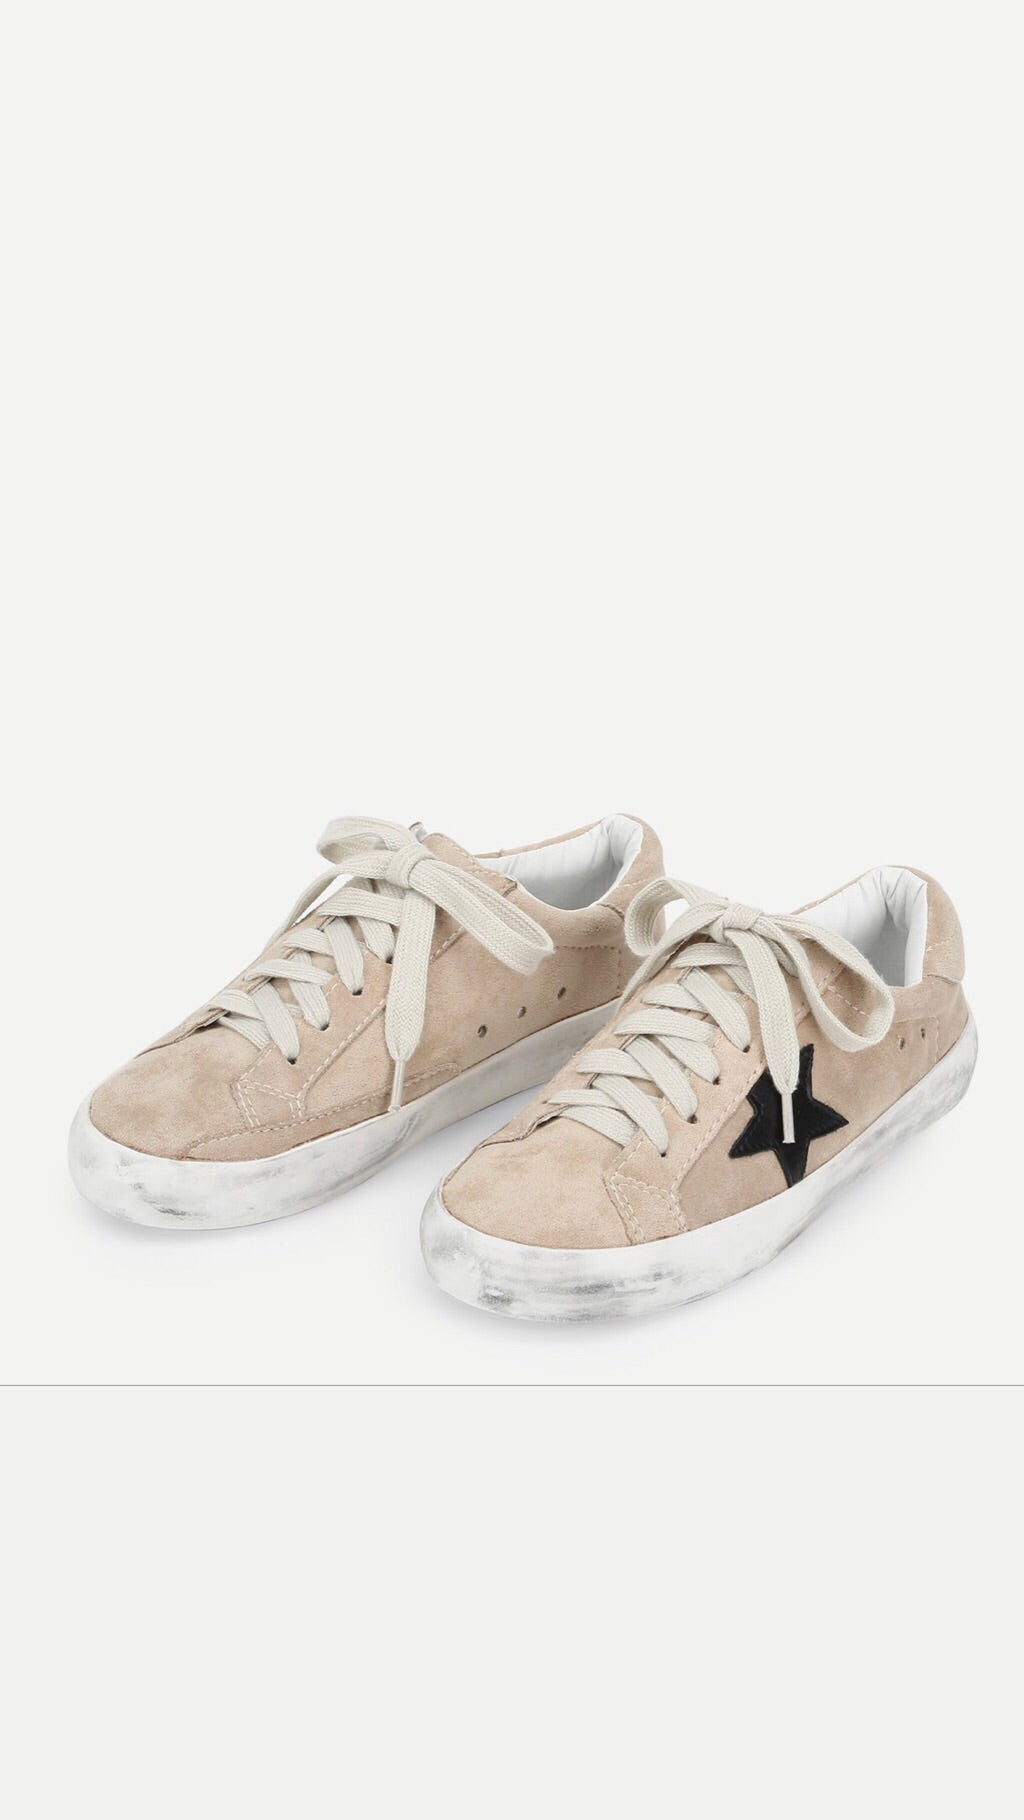 Star Sneaker in Tan Suede